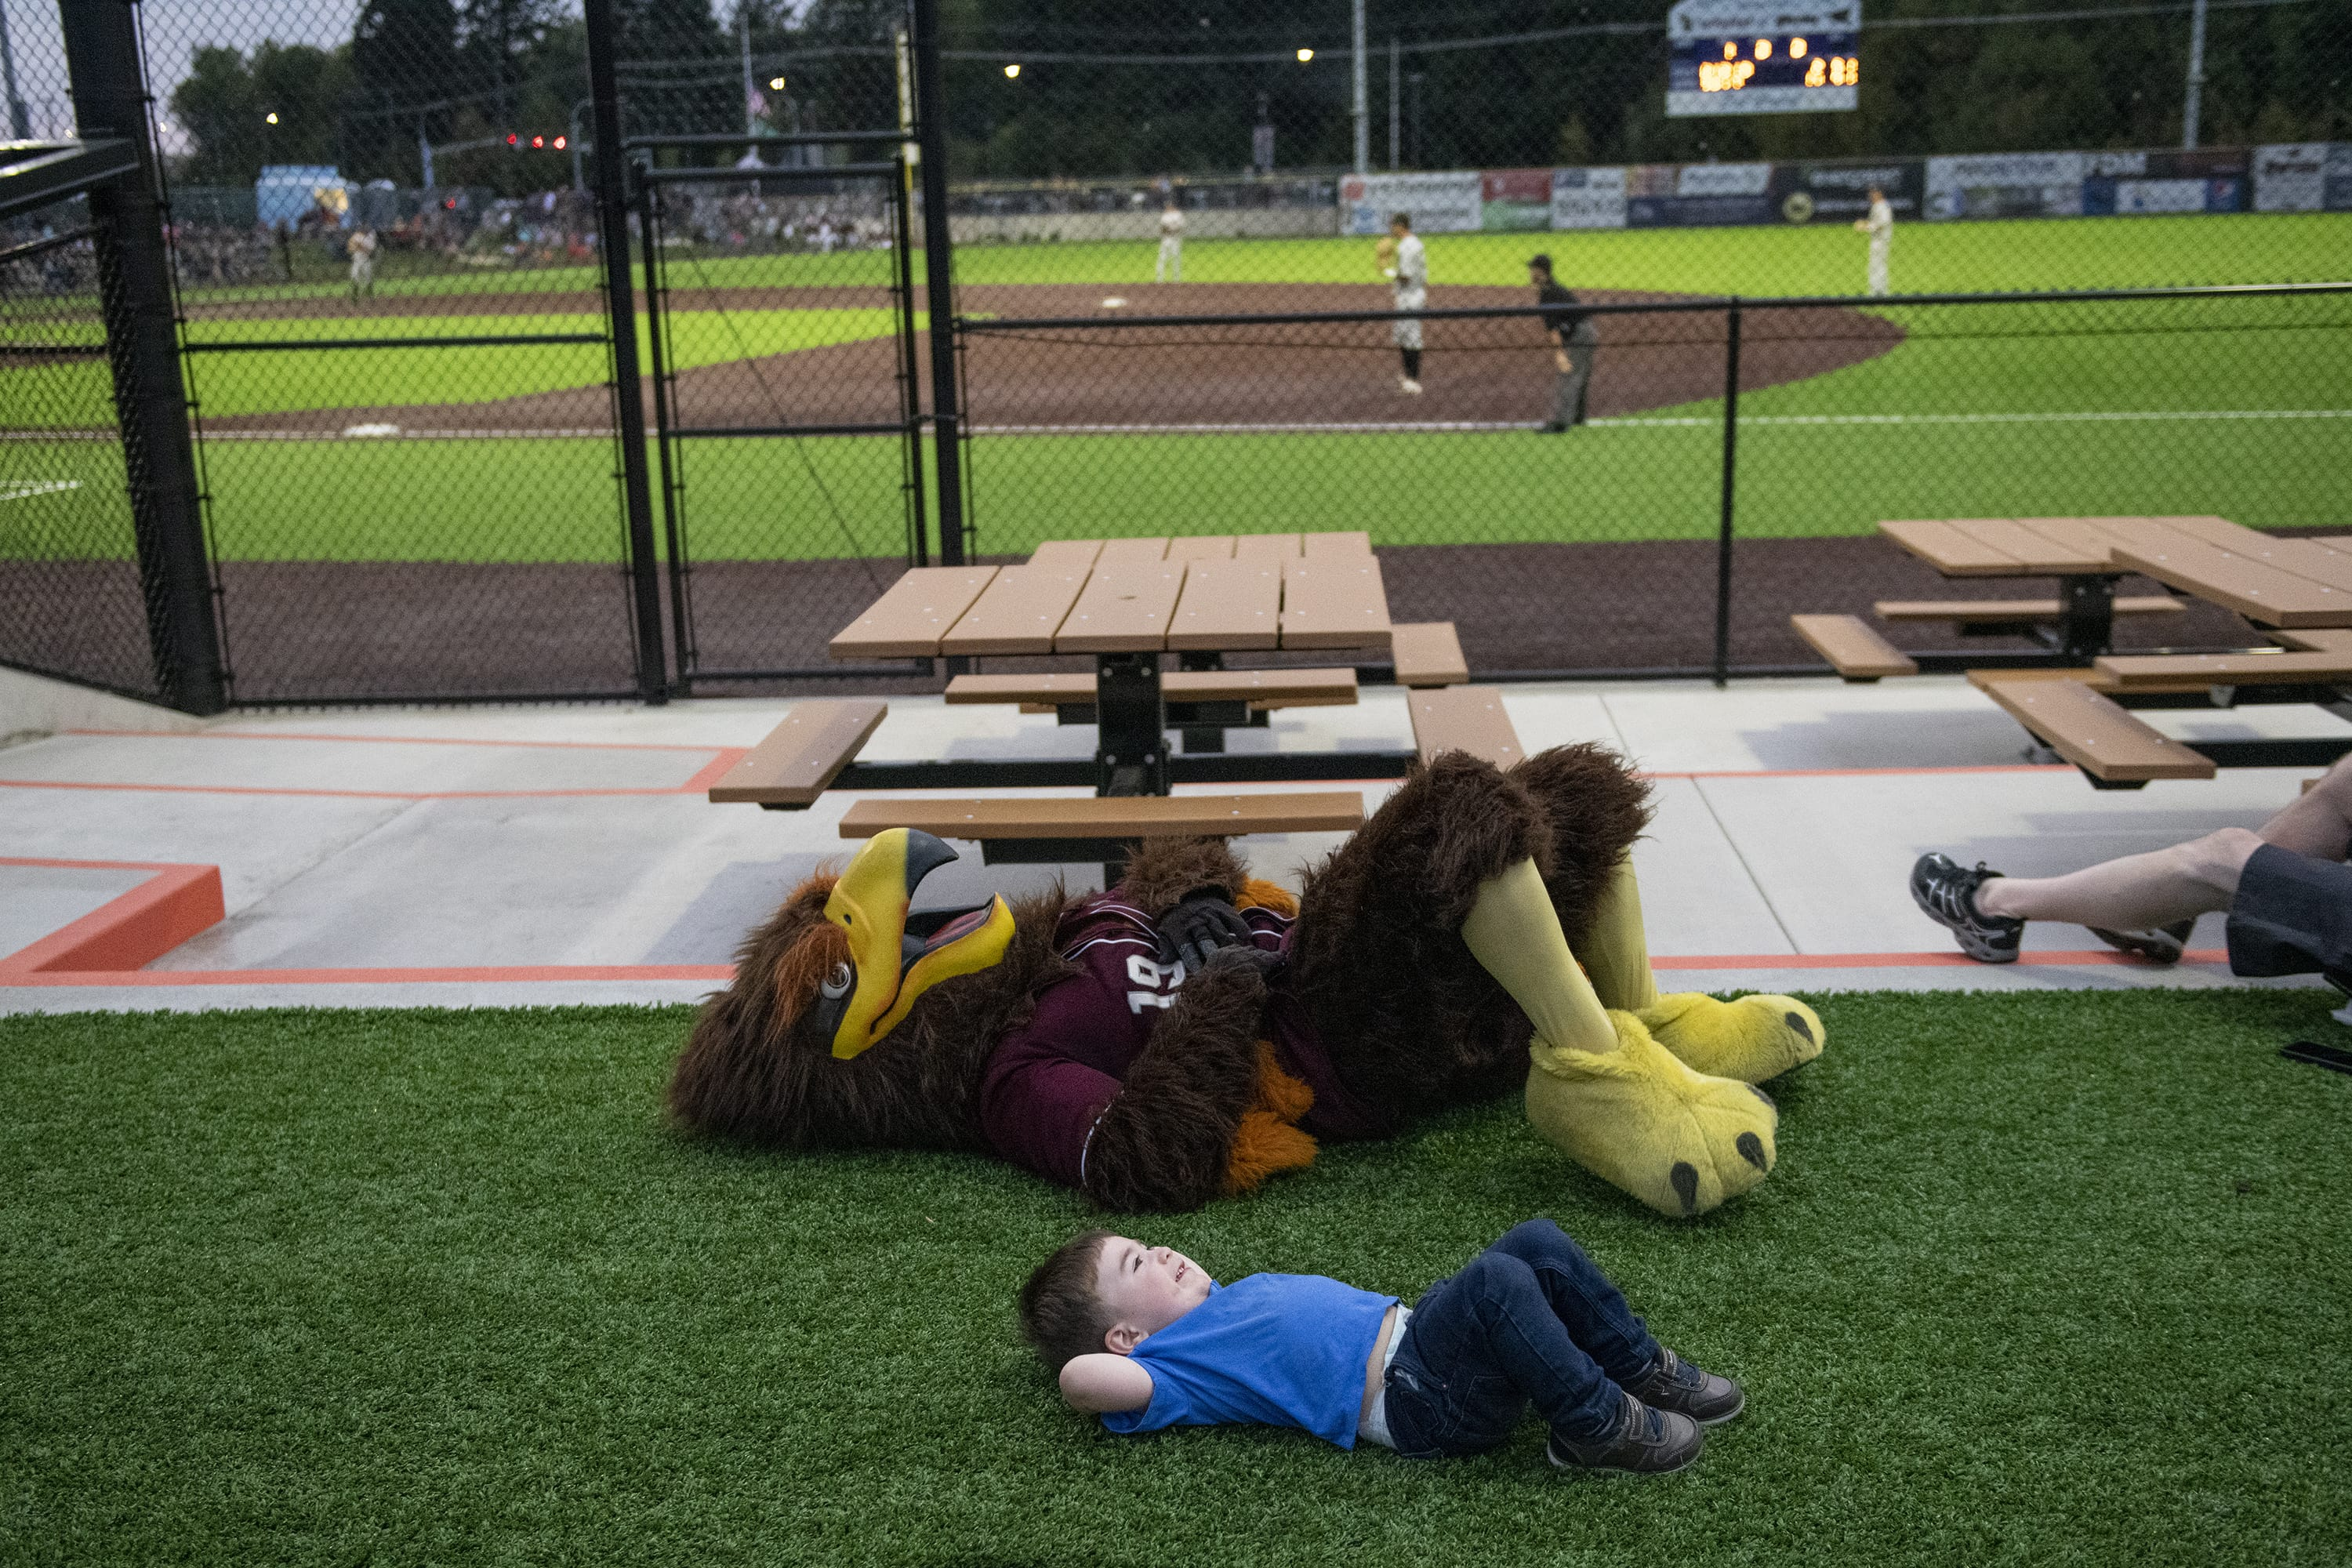 Rally, top, and Colin Jackson, 2, bottom, rest on the ground during the Raptors vs. Elks game at the Ridgefield Outdoor Recreation Complex on Friday evening, August 9, 2019. (Zach Wilkinson/The Columbian)